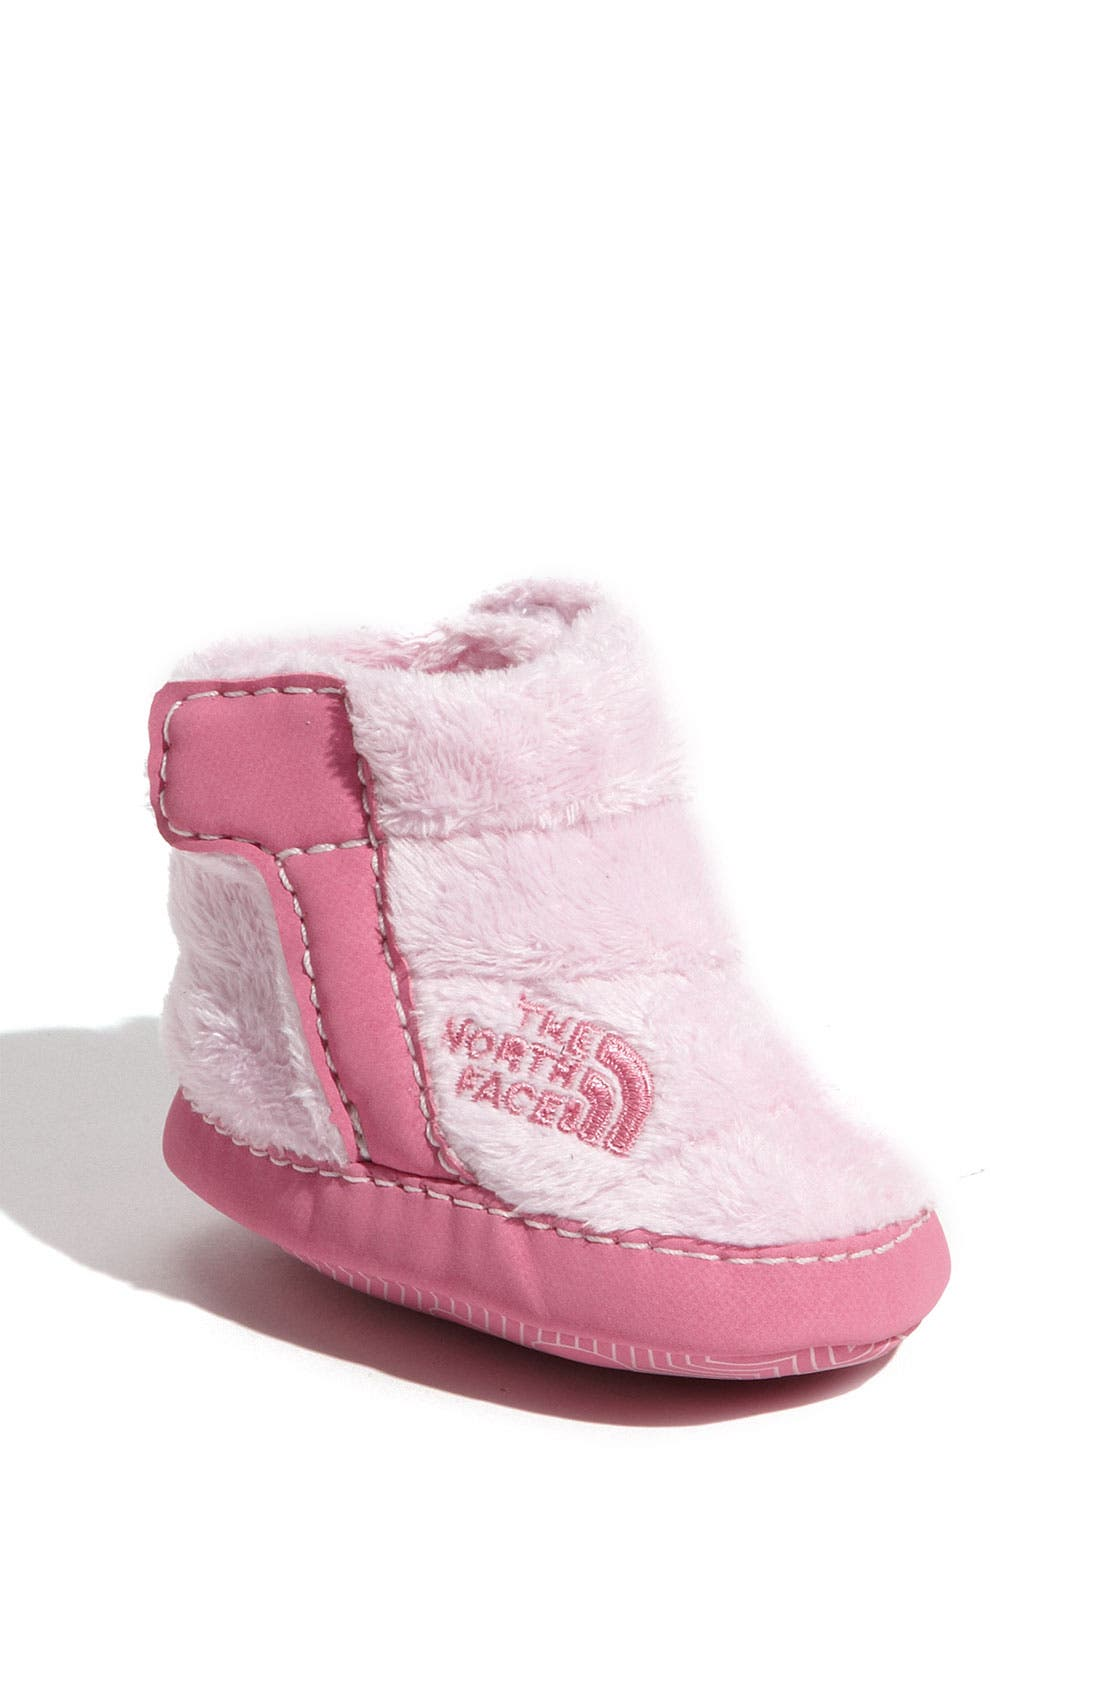 Main Image - The North Face Fleece Bootie (Baby)